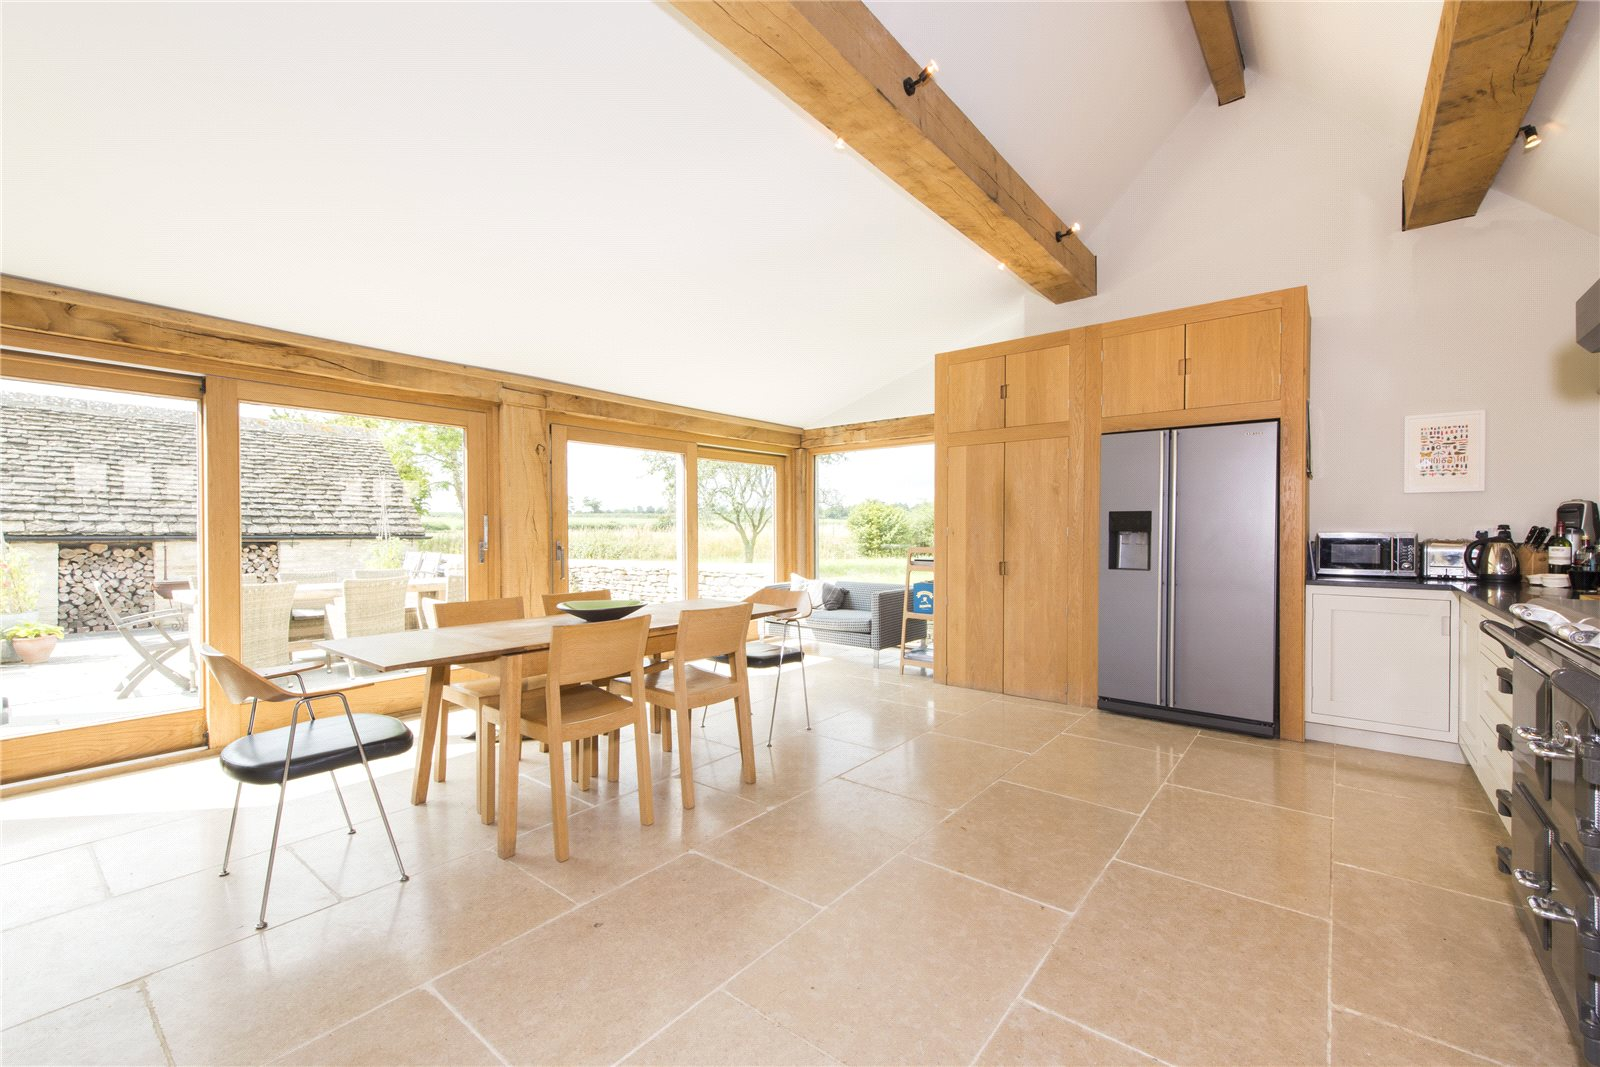 Additional photo for property listing at Ewen, Cirencester, Gloucestershire, GL7 Cirencester, Engeland